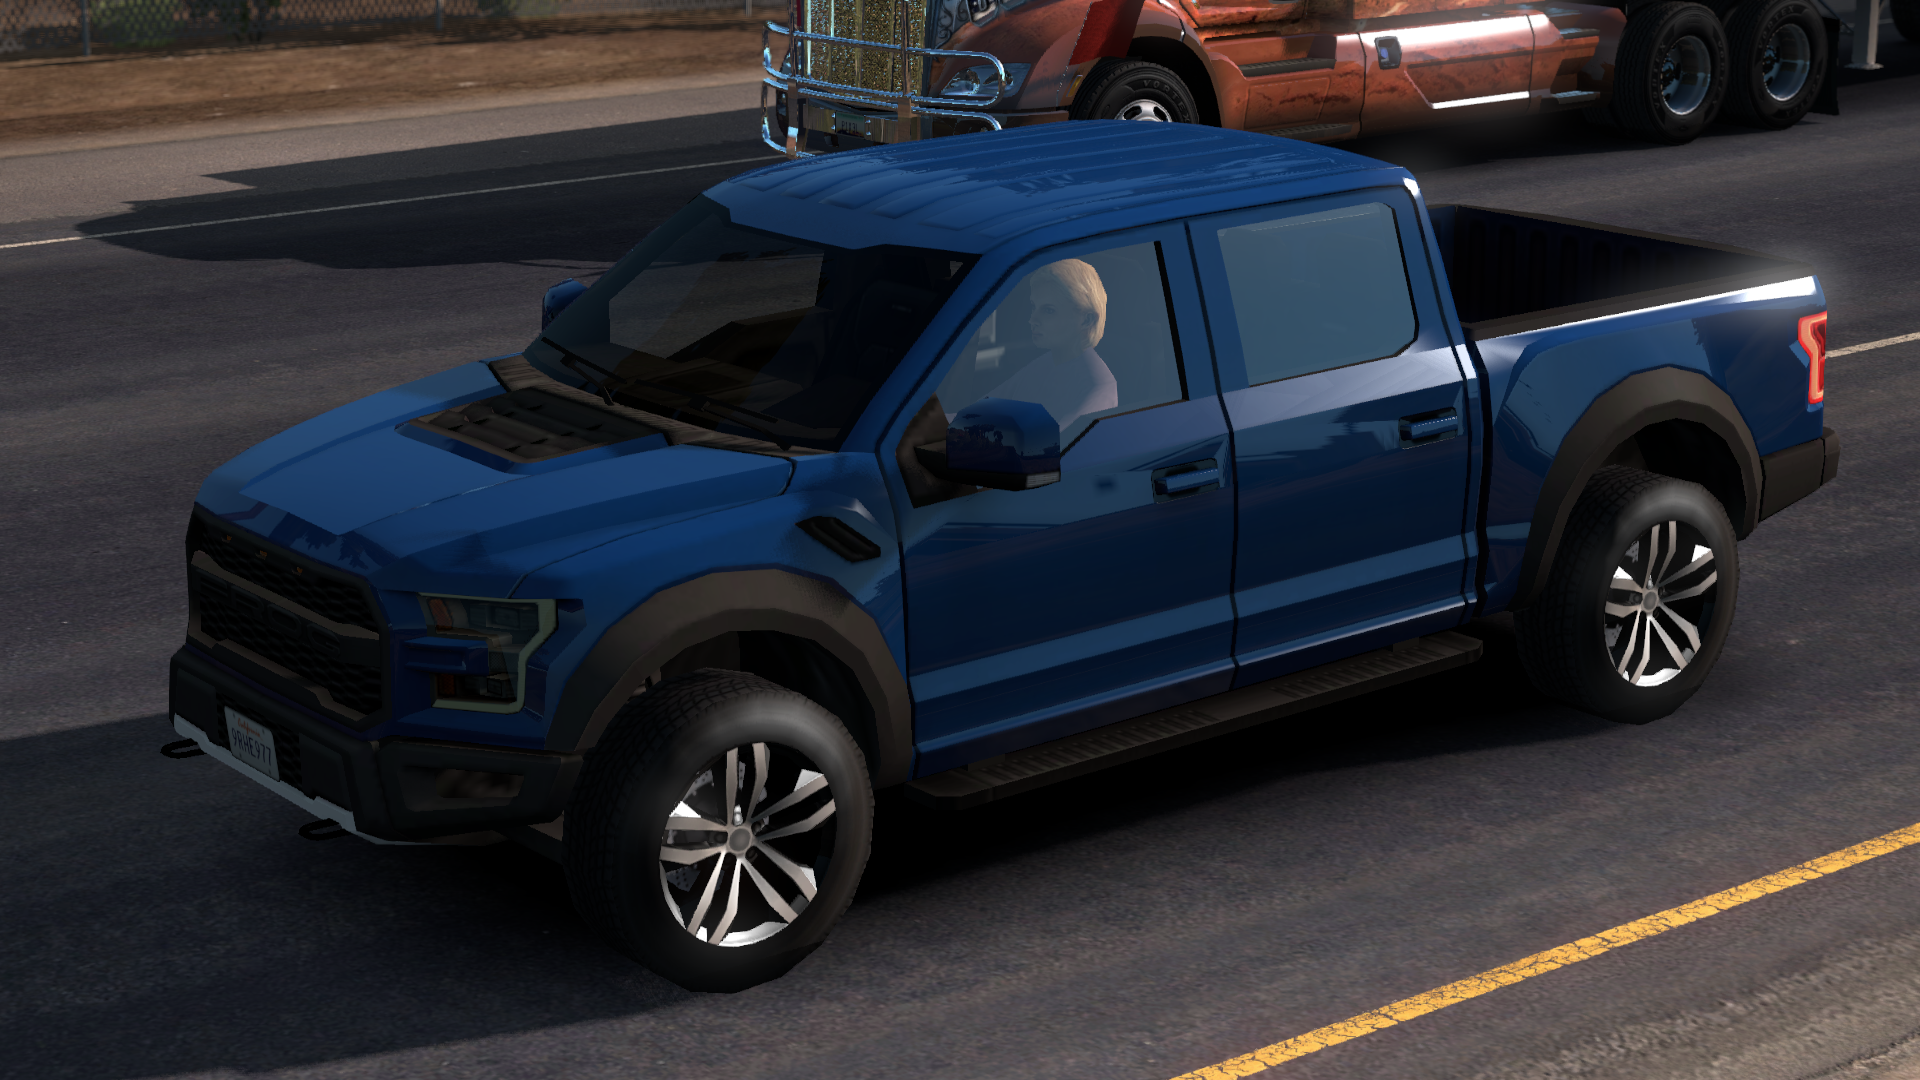 Ats ford raptor png